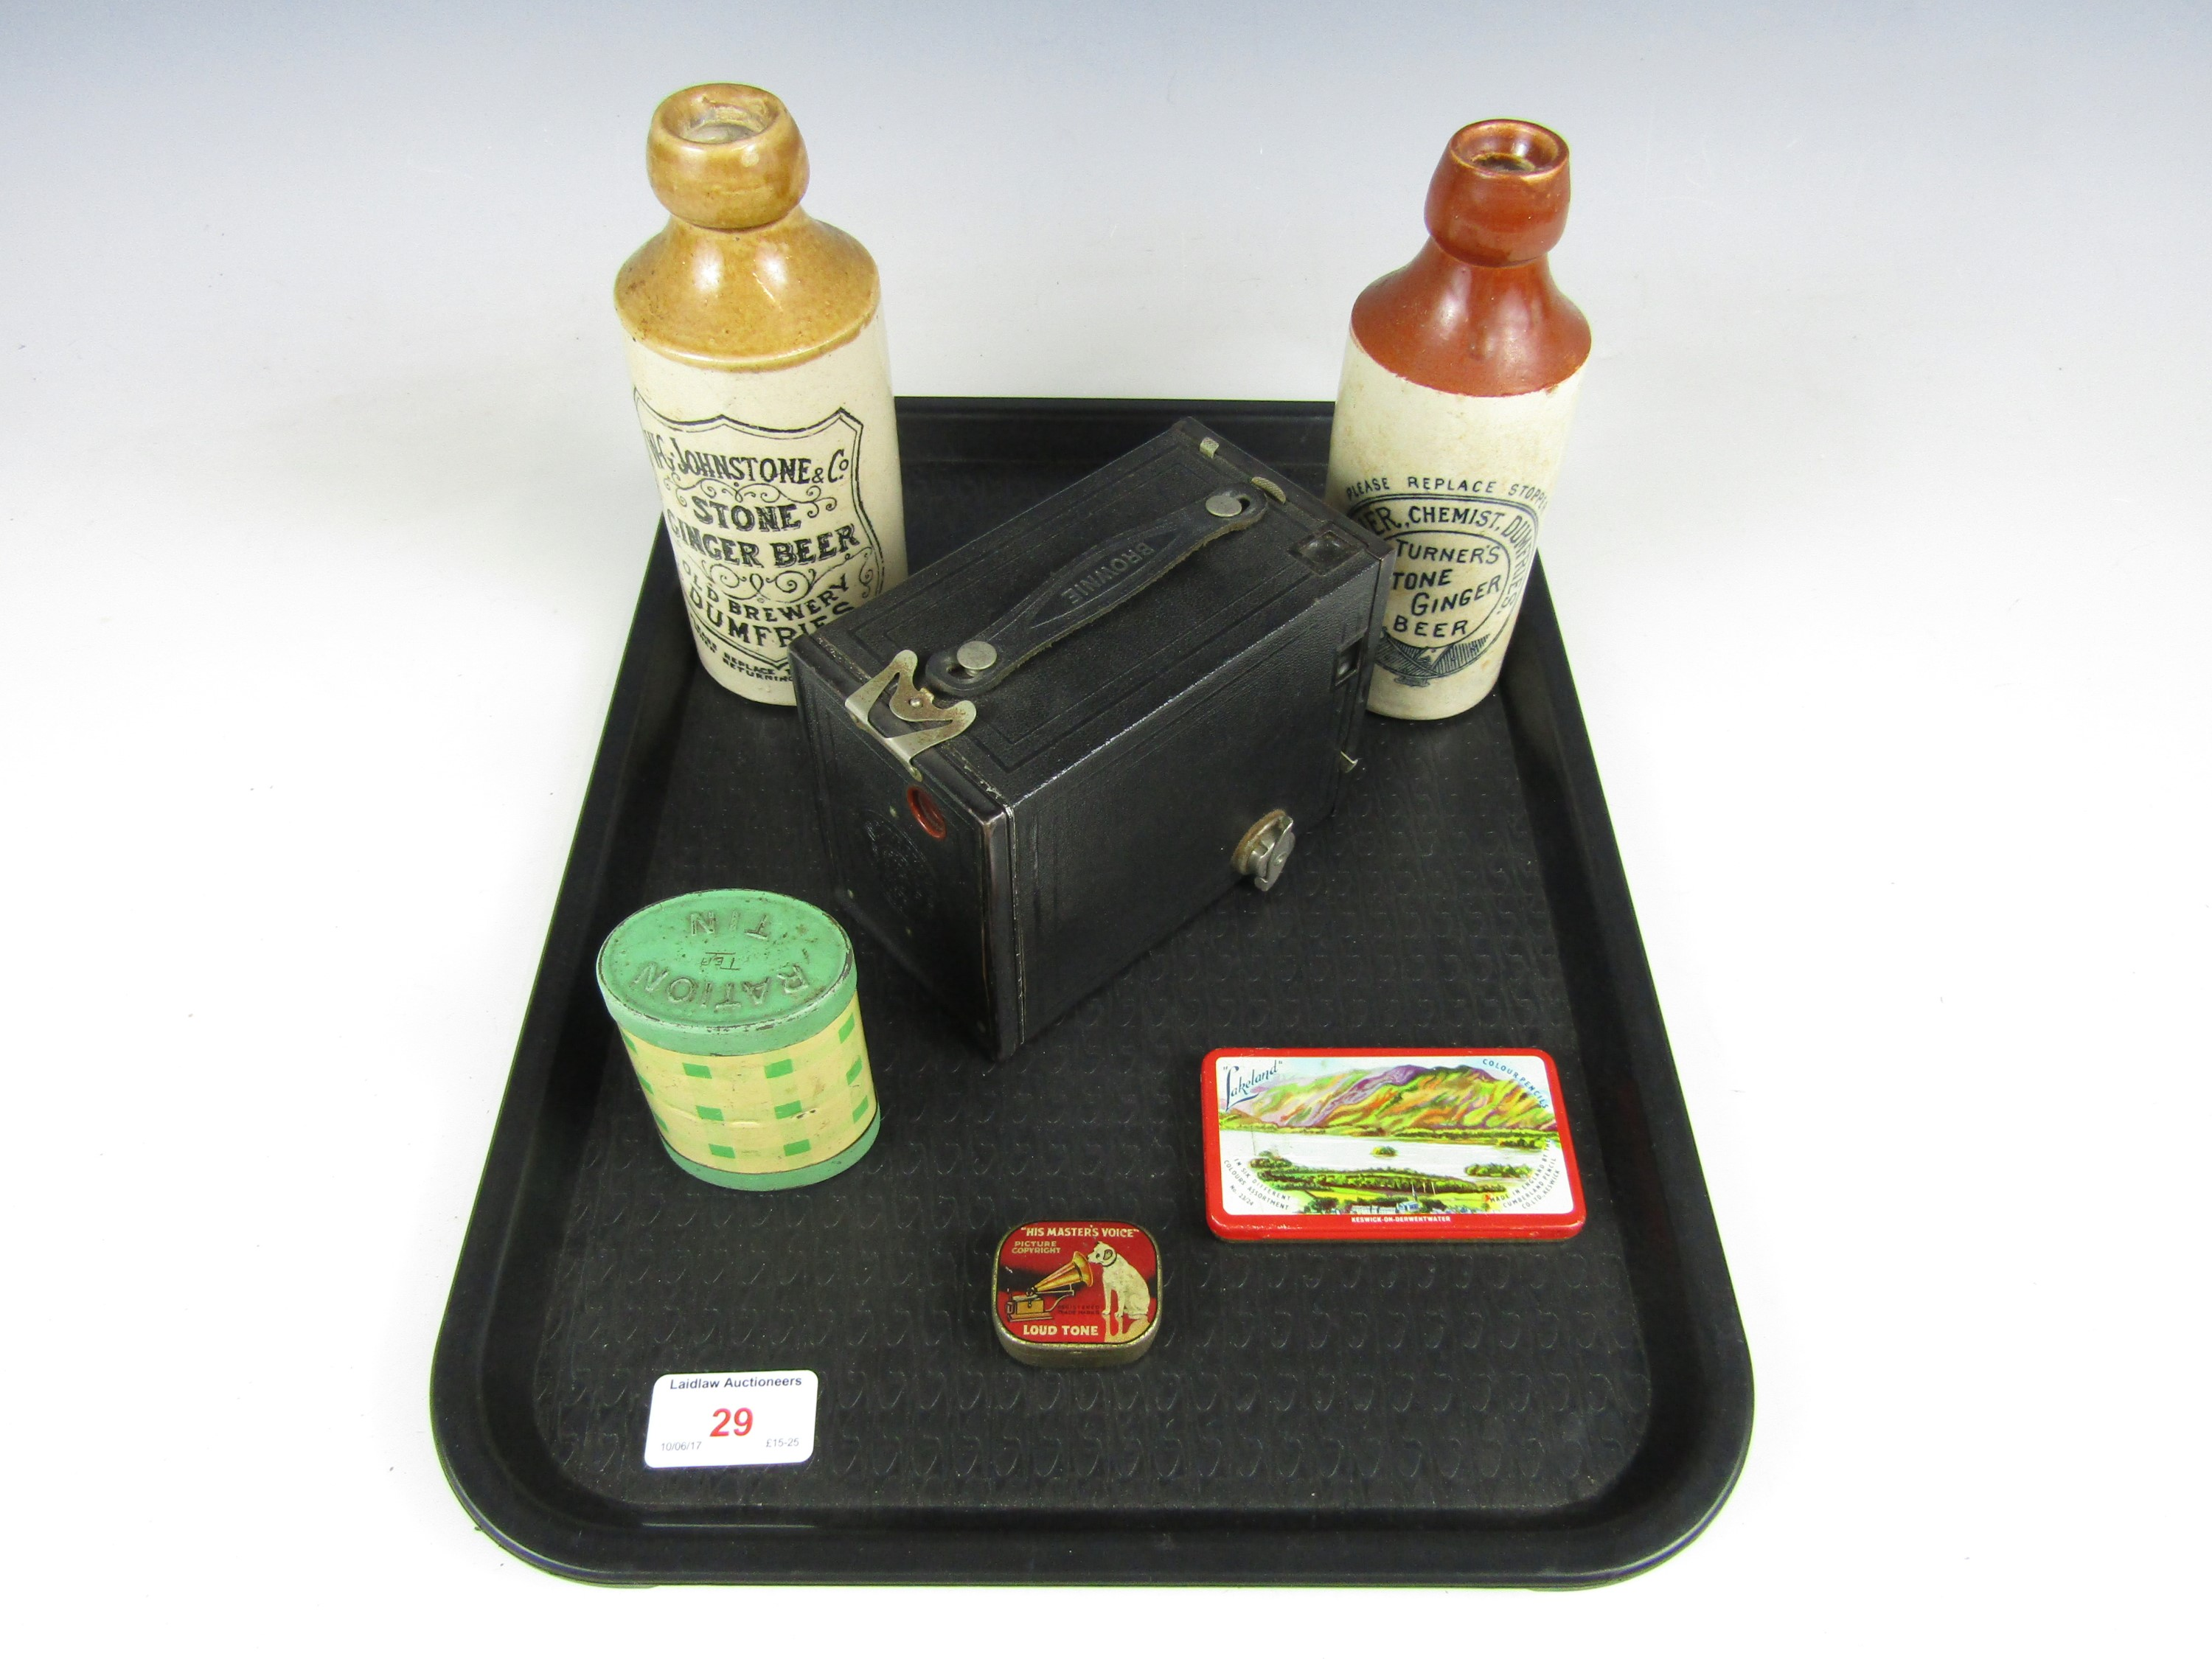 Lot 29 - Sundry collectors' items including two stoneware ginger beer bottles, a Kodak No 2 Brownie 120